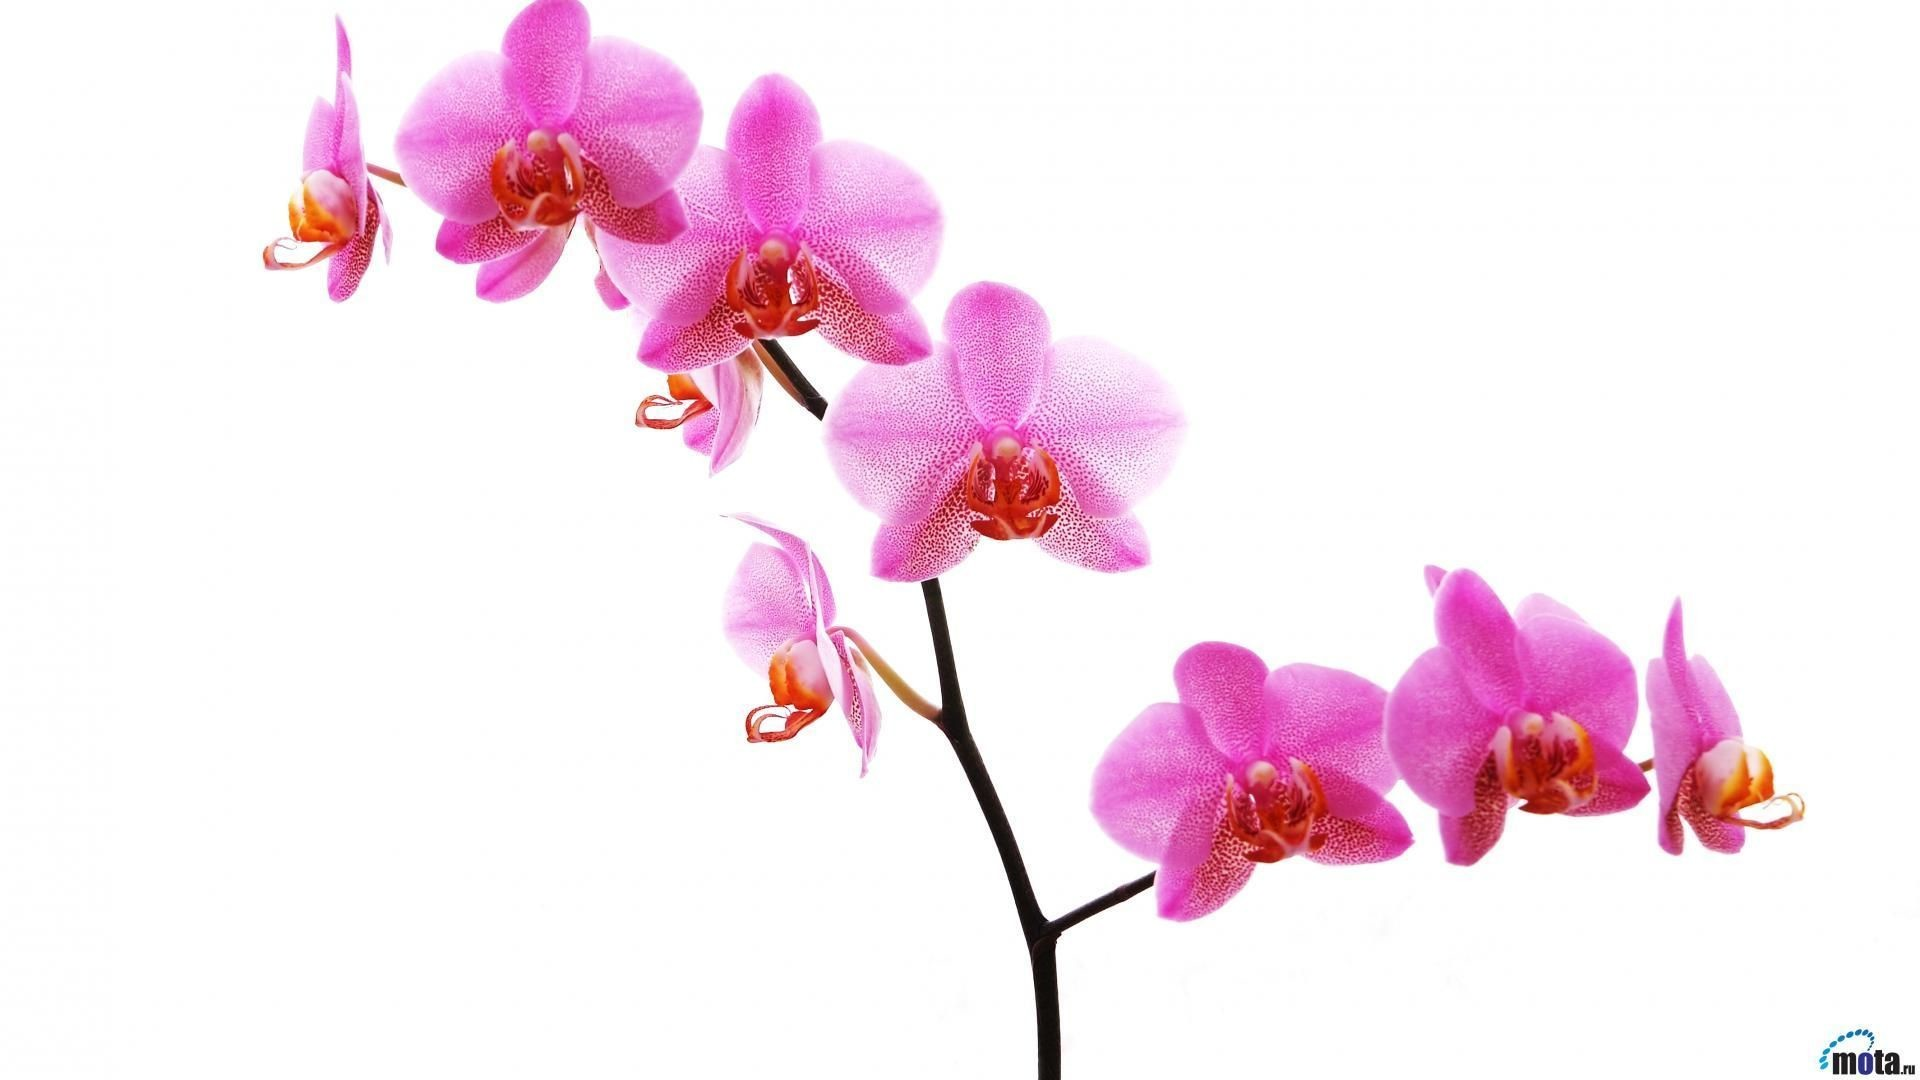 Top Orchid White Phone Wallpaper Images for Pinterest